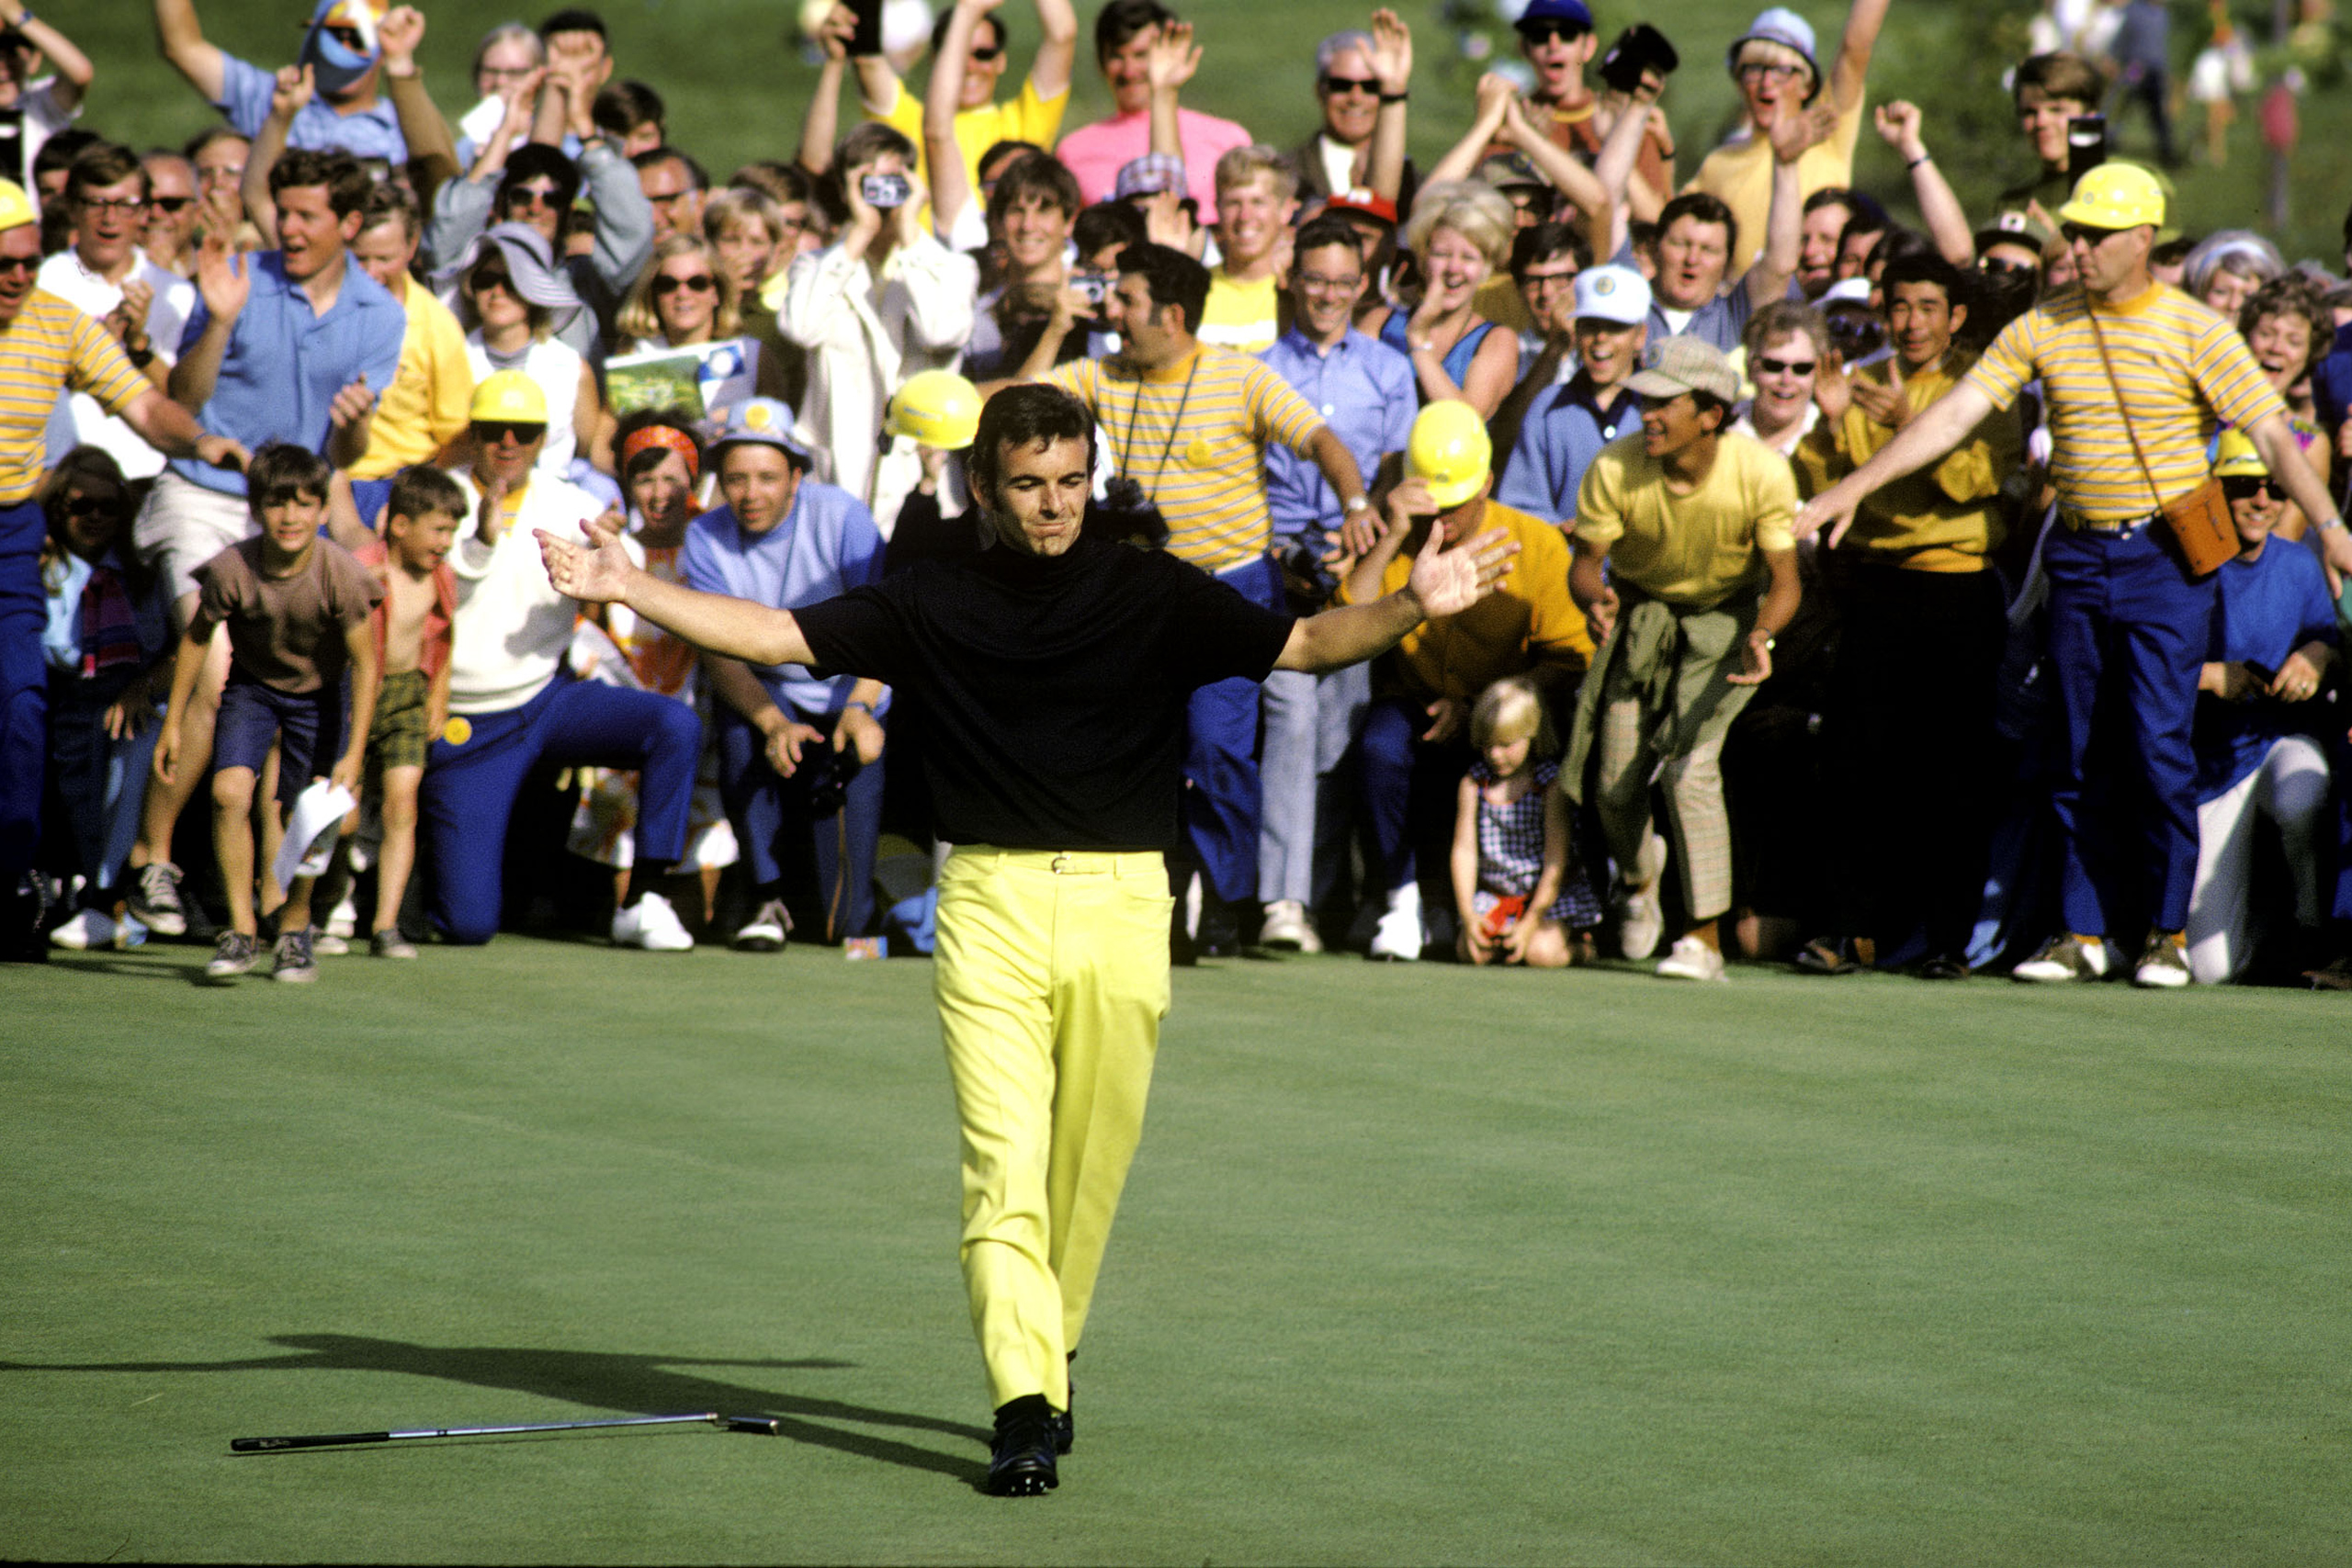 Hazeltine's men's major championship history is more nuanced than a catalog of champions and scores.  Its first, the 1970 US Open, was a wind-whipped massacre where half the field didn't break 80 in the opening round, including Nicklaus, who bemoaned the new venue's difficulty in pre-tournament comments. Englishman Tony Jacklin didn't mind the breeze; he scooped up Hazeltine's first men's major, while Payne Stewart claimed its second in 1991.